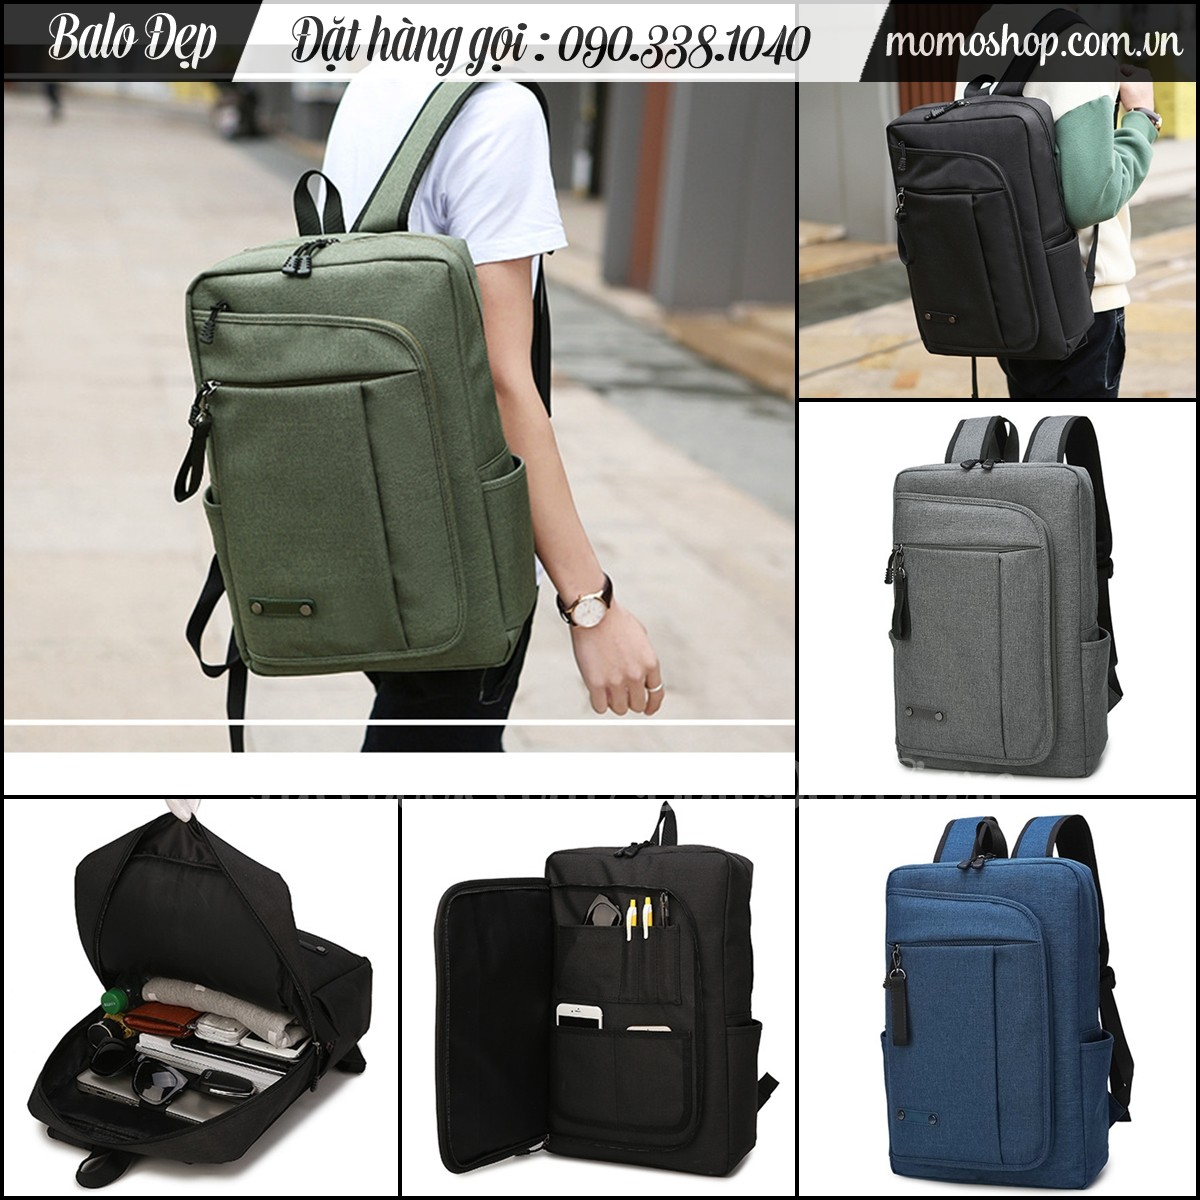 balo laptop,balo laptop đẹp,balo laptop 15.6 inch,balo laptop chống nước,balo laptop 17 inch,balo laptop nữ,balo laptop 13 inch,balo laptop hà nội,balo de laptop,balo laptop 1 quai,balo laptop 2 trong 1,balo 2 laptop,balo laptop bền,balo laptop bền đẹp,balo laptop bằng da,balo laptop bình thạnh,balo laptop black friday,balo laptop chống trộm,balo laptop cao cấp,balo laptop da,balo laptop đà nẵng,balo laptop đeo chéo,balo laptop da bò,balo laptop du lich,balo laptop dep,balo laptop đẹp hà nội,balo laptop đi mưa,balo laptop đẹp giá rẻ tphcm,balo laptop đẹp đà nẵng,balo laptop đẹp tphcm,balo laptop đẹp ở hà nội,balo laptop 12 inch,balo laptop 12,balo laptop giá rẻ hà nội,balo laptop gò vấp,balo laptop giá sỉ,balo laptop giá rẻ tphcm,balo laptop giá rẻ tại đà nẵng,balo laptop gia re,balo laptop giá rẻ tại hà nội,balo laptop hàng hiệu,balo laptop hàn quốc,balo laptop hải phòng,balo laptop hà nội giá rẻ,balo laptop huế,balo laptop ipad,balo laptop incase,balo laptop 17.3 inch